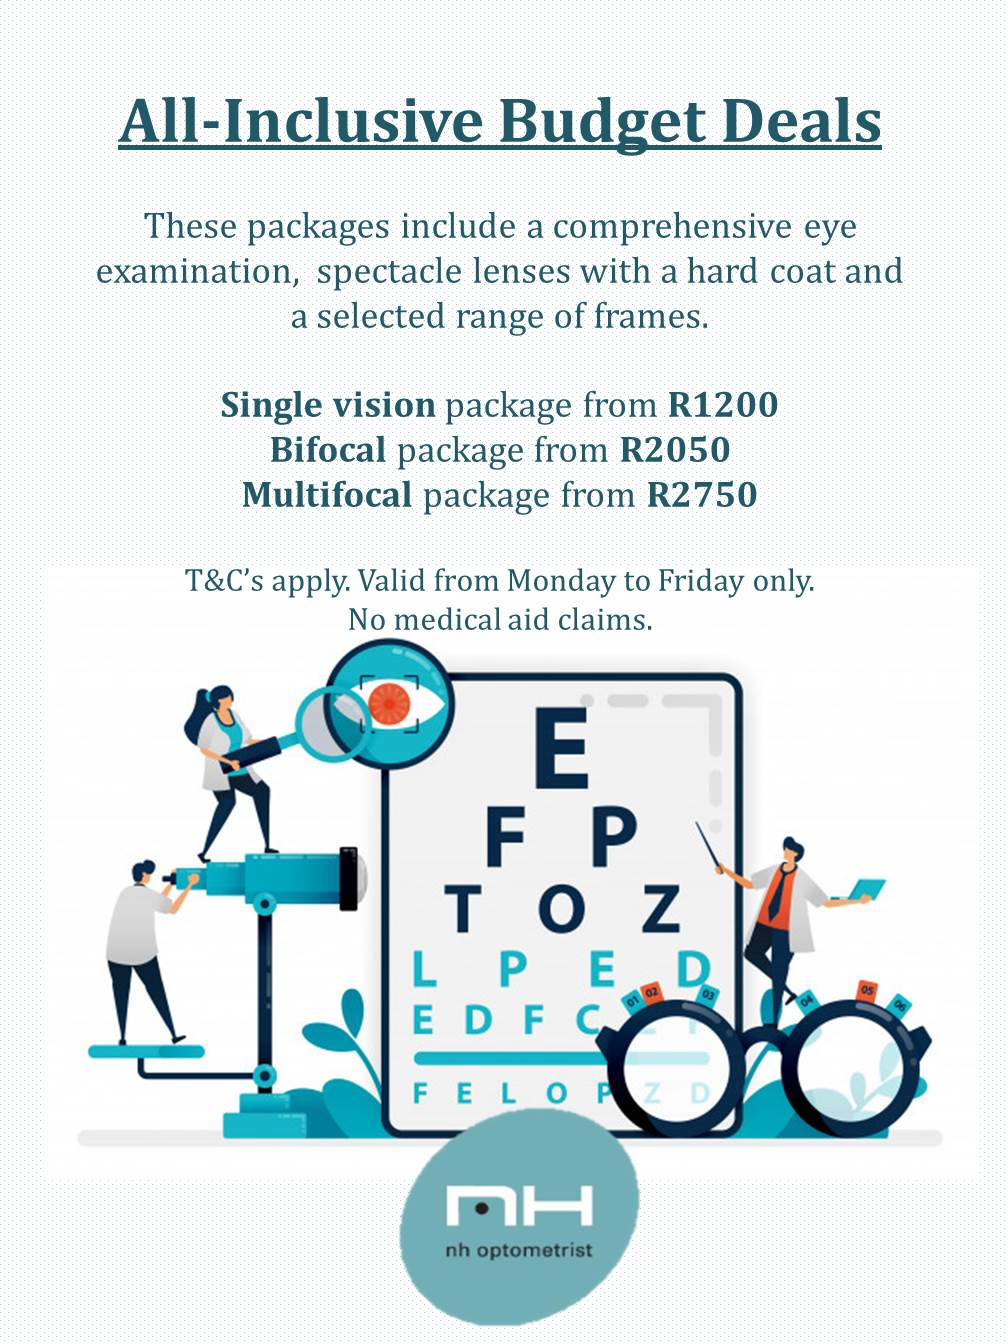 All-inclusive budget deals at NH Optometrist Plattekloof Cape Town